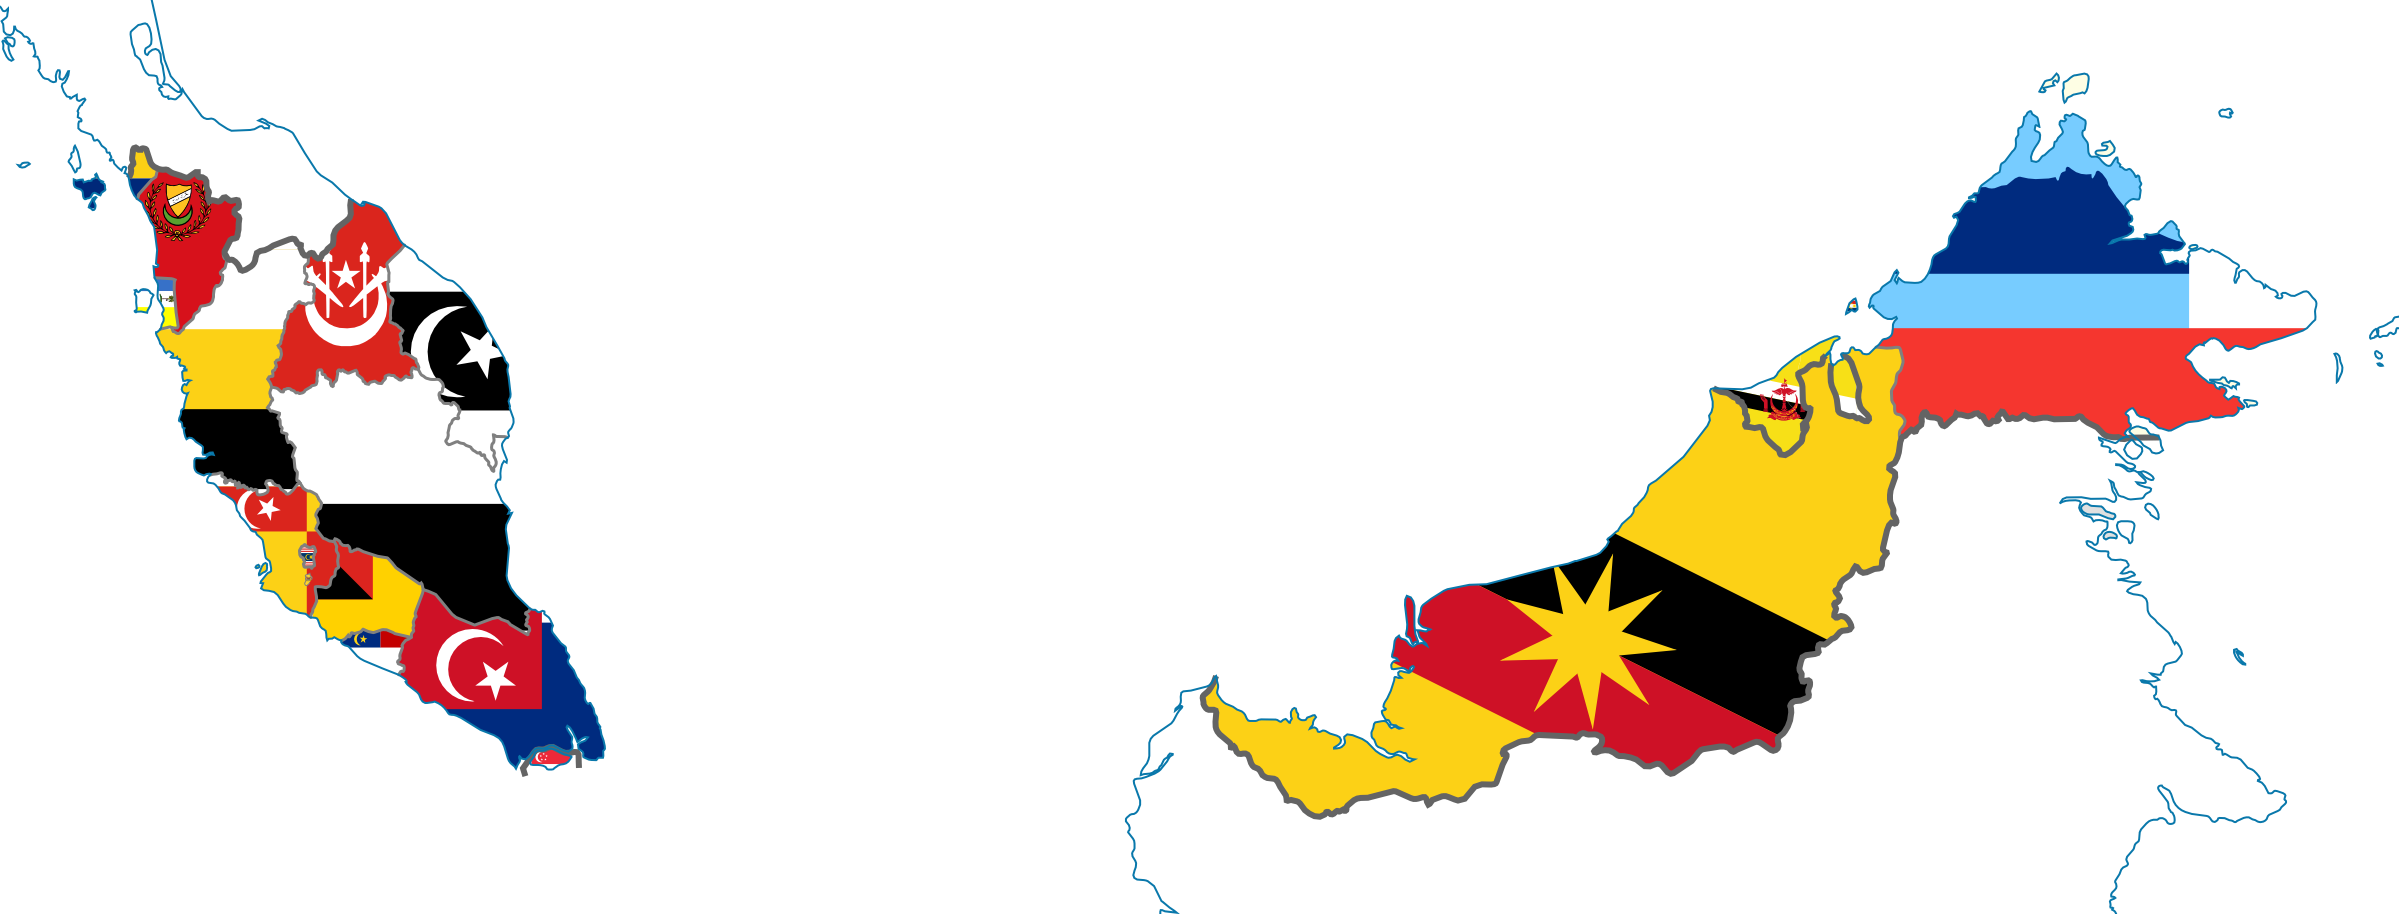 Picture of: Flag Map Of States Of Malaysia Singapore Brunei By Hosmich On Deviantart